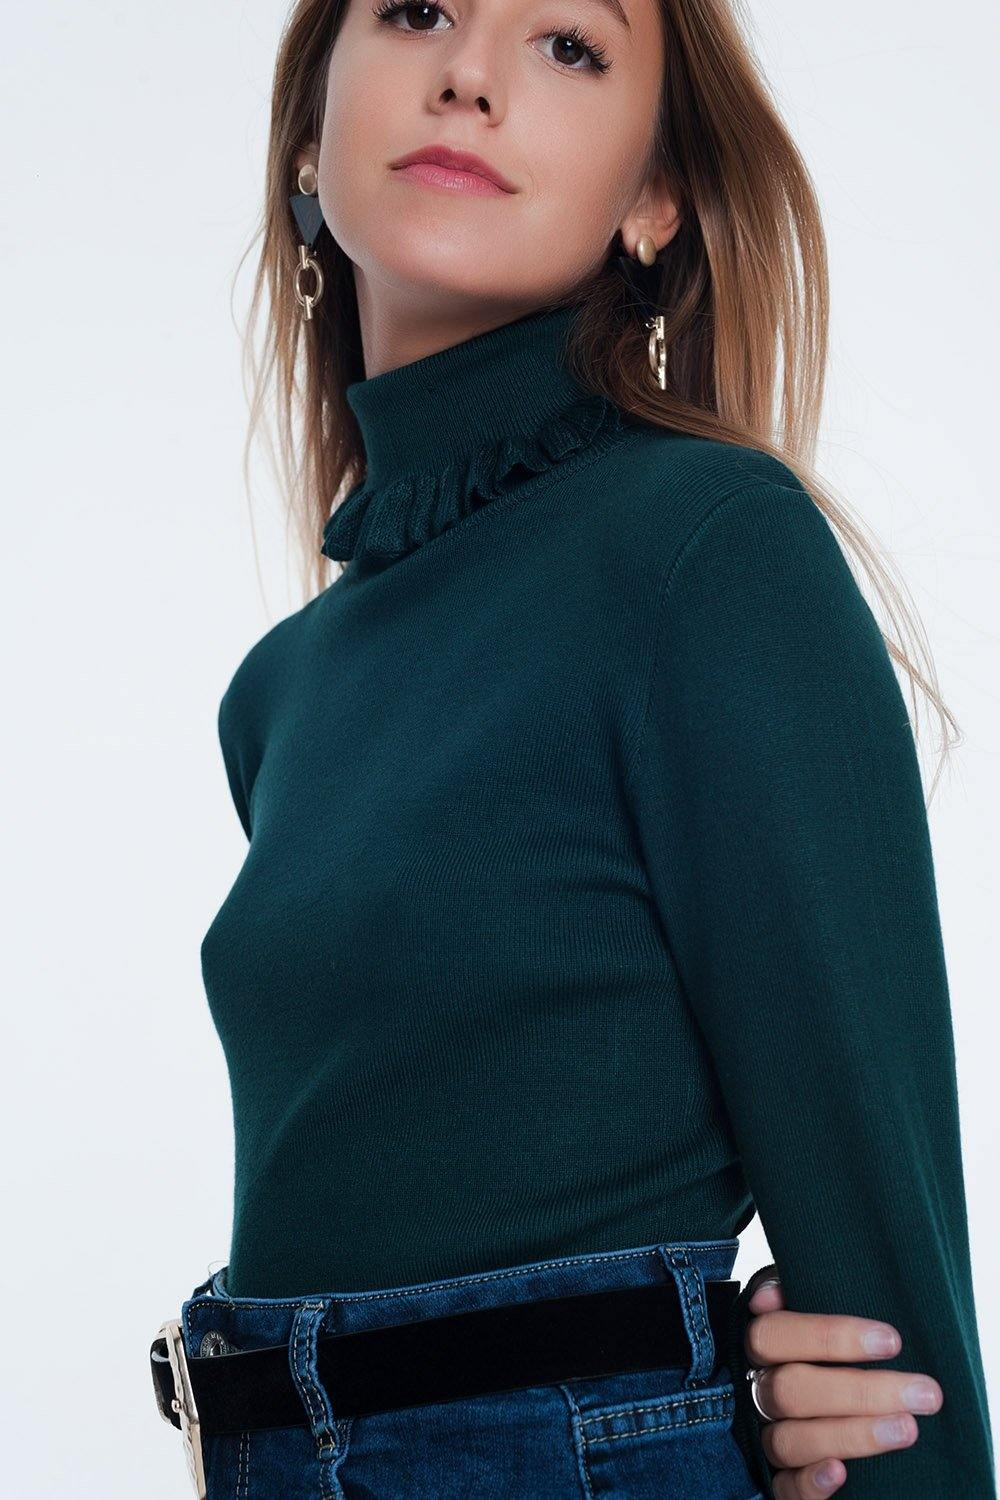 Q2 Green turtleneck sweatshirt